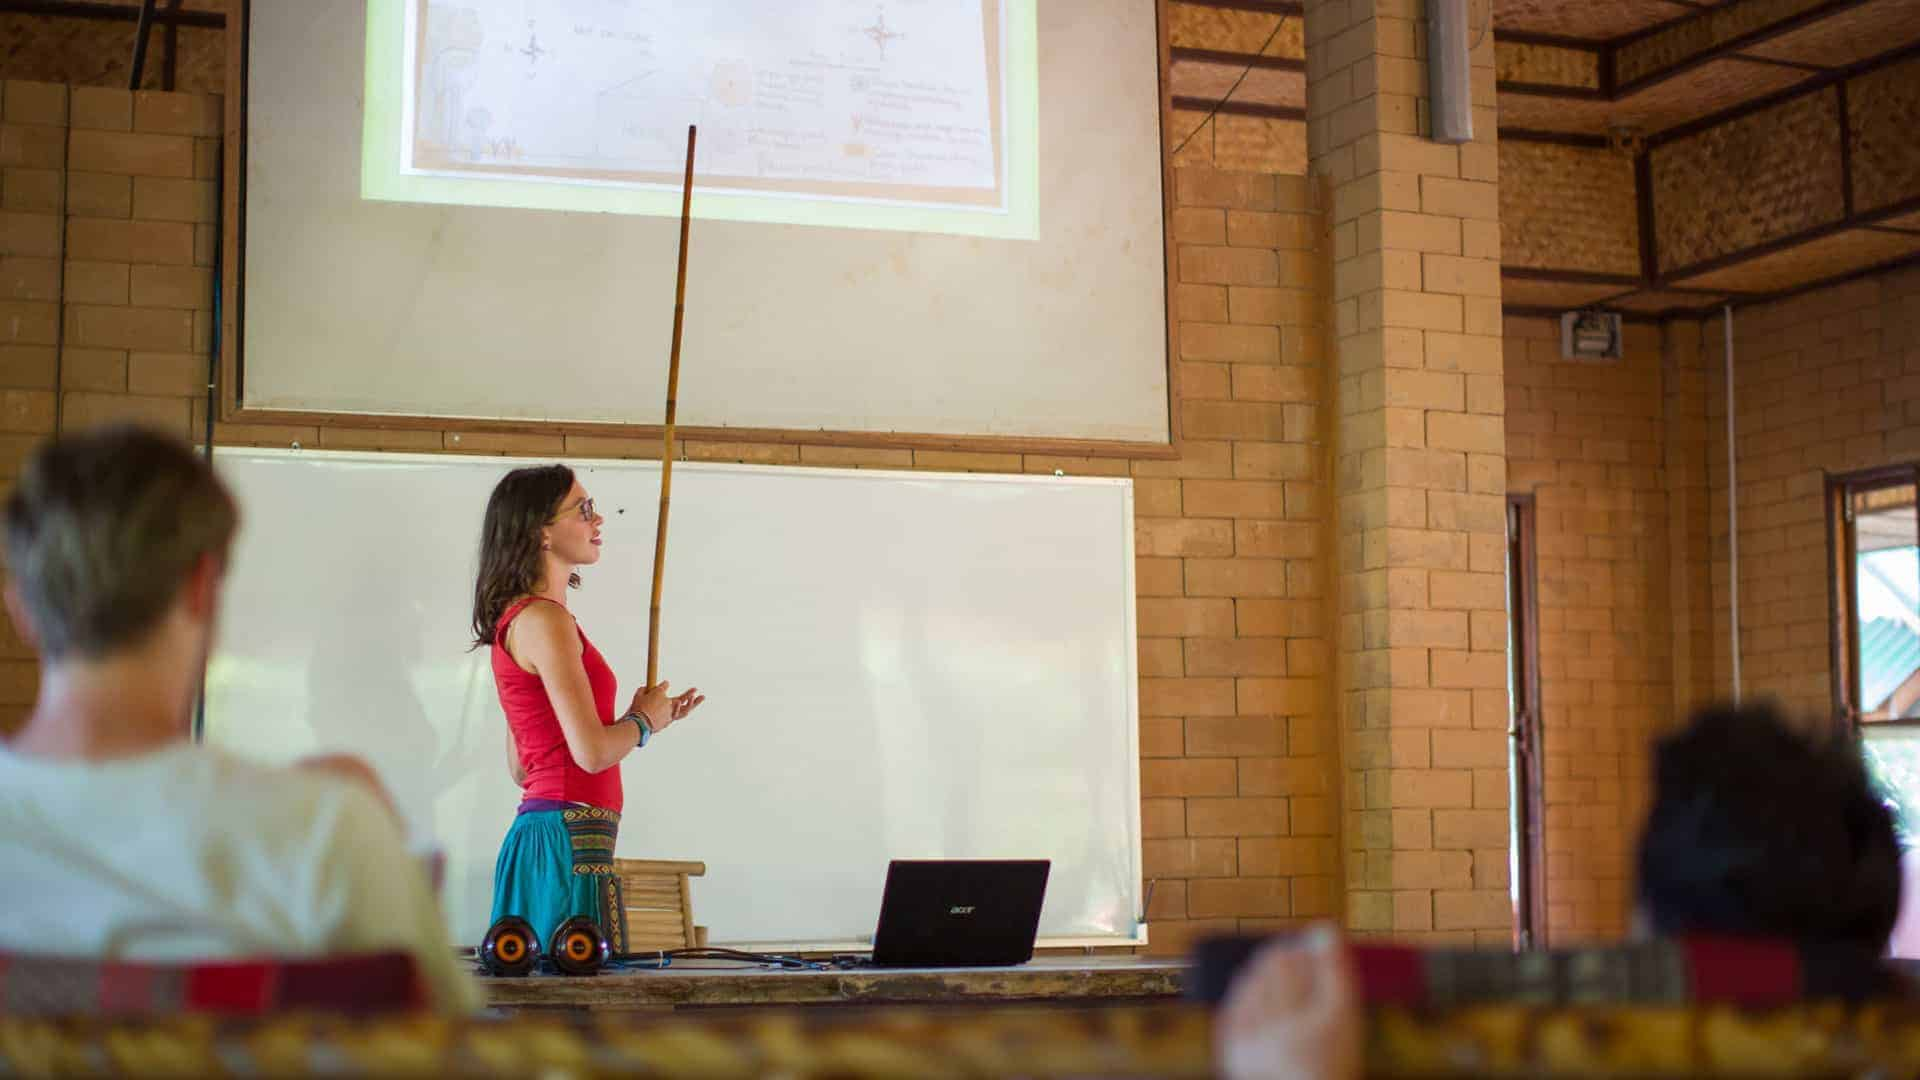 Permaculture student Master Plan presentation in the classroom